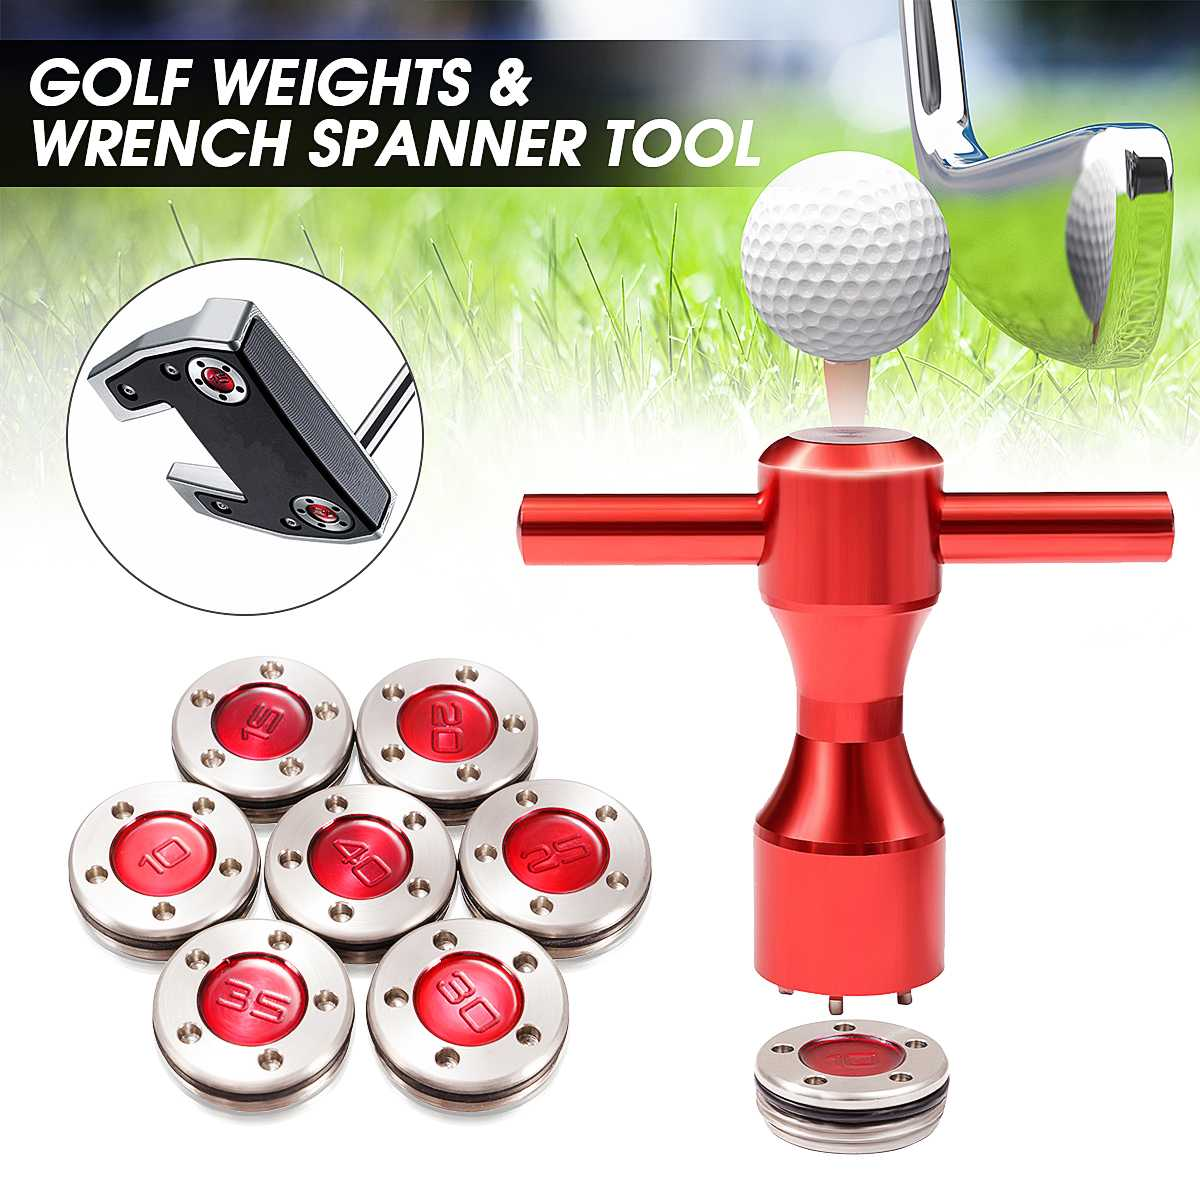 2Pcs Red Golf Weights + Wrench Spanner Tool For Titleist-Scotty-Cameron Putters 10g/15g/20g/25g/30g/35g/40g Include Rubber Rings